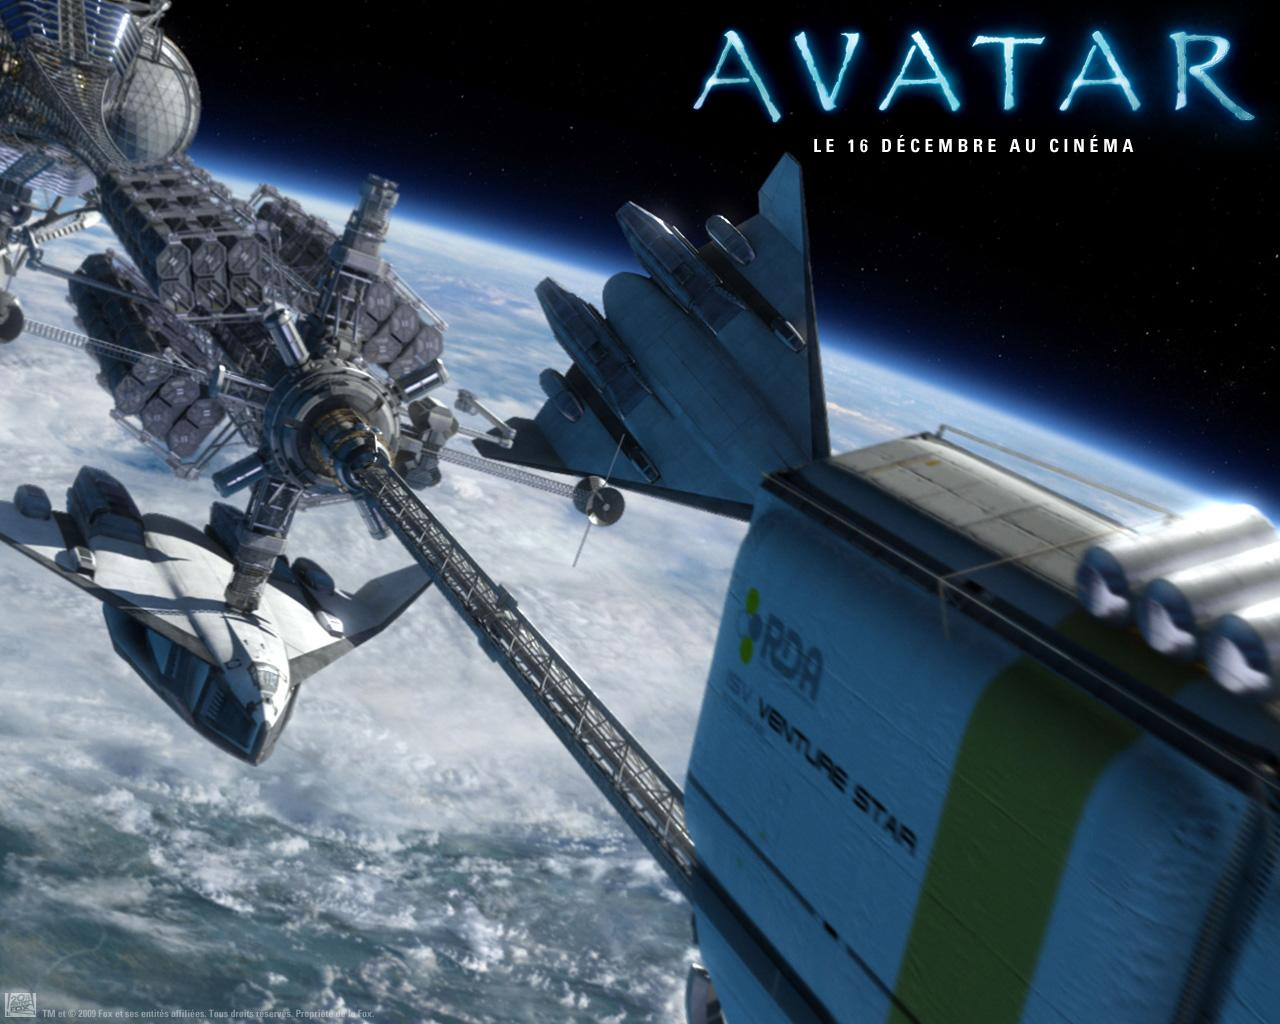 Wallpaper AVATAR navettes station spatiale